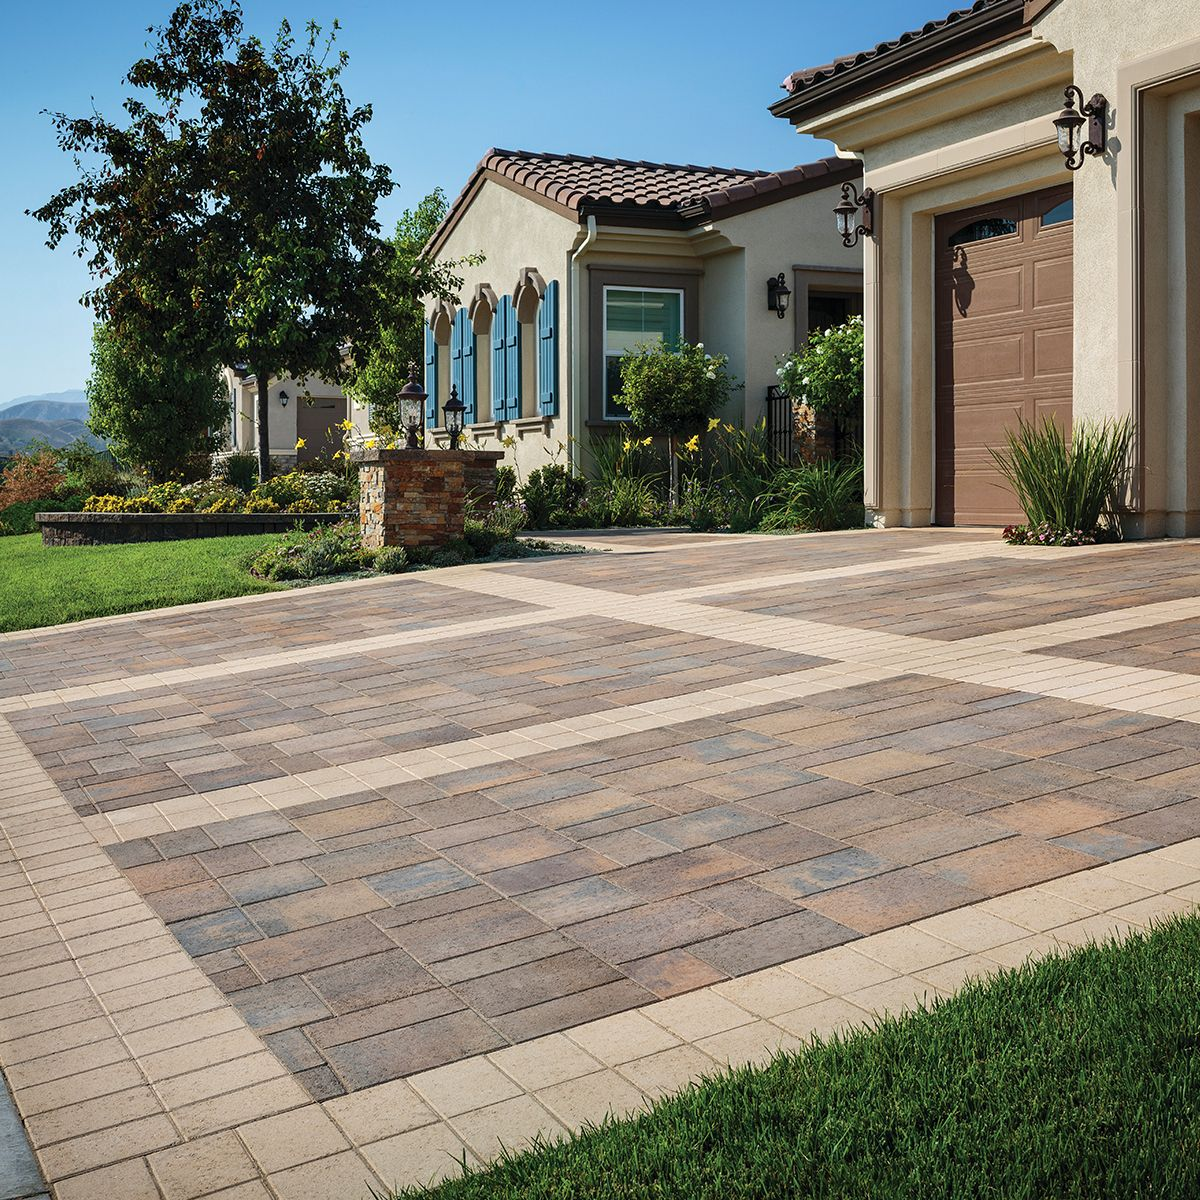 What Do You Think Of The Border On This Paver Driveway Patio Pavers Design Brick Exterior House Paver Driveway